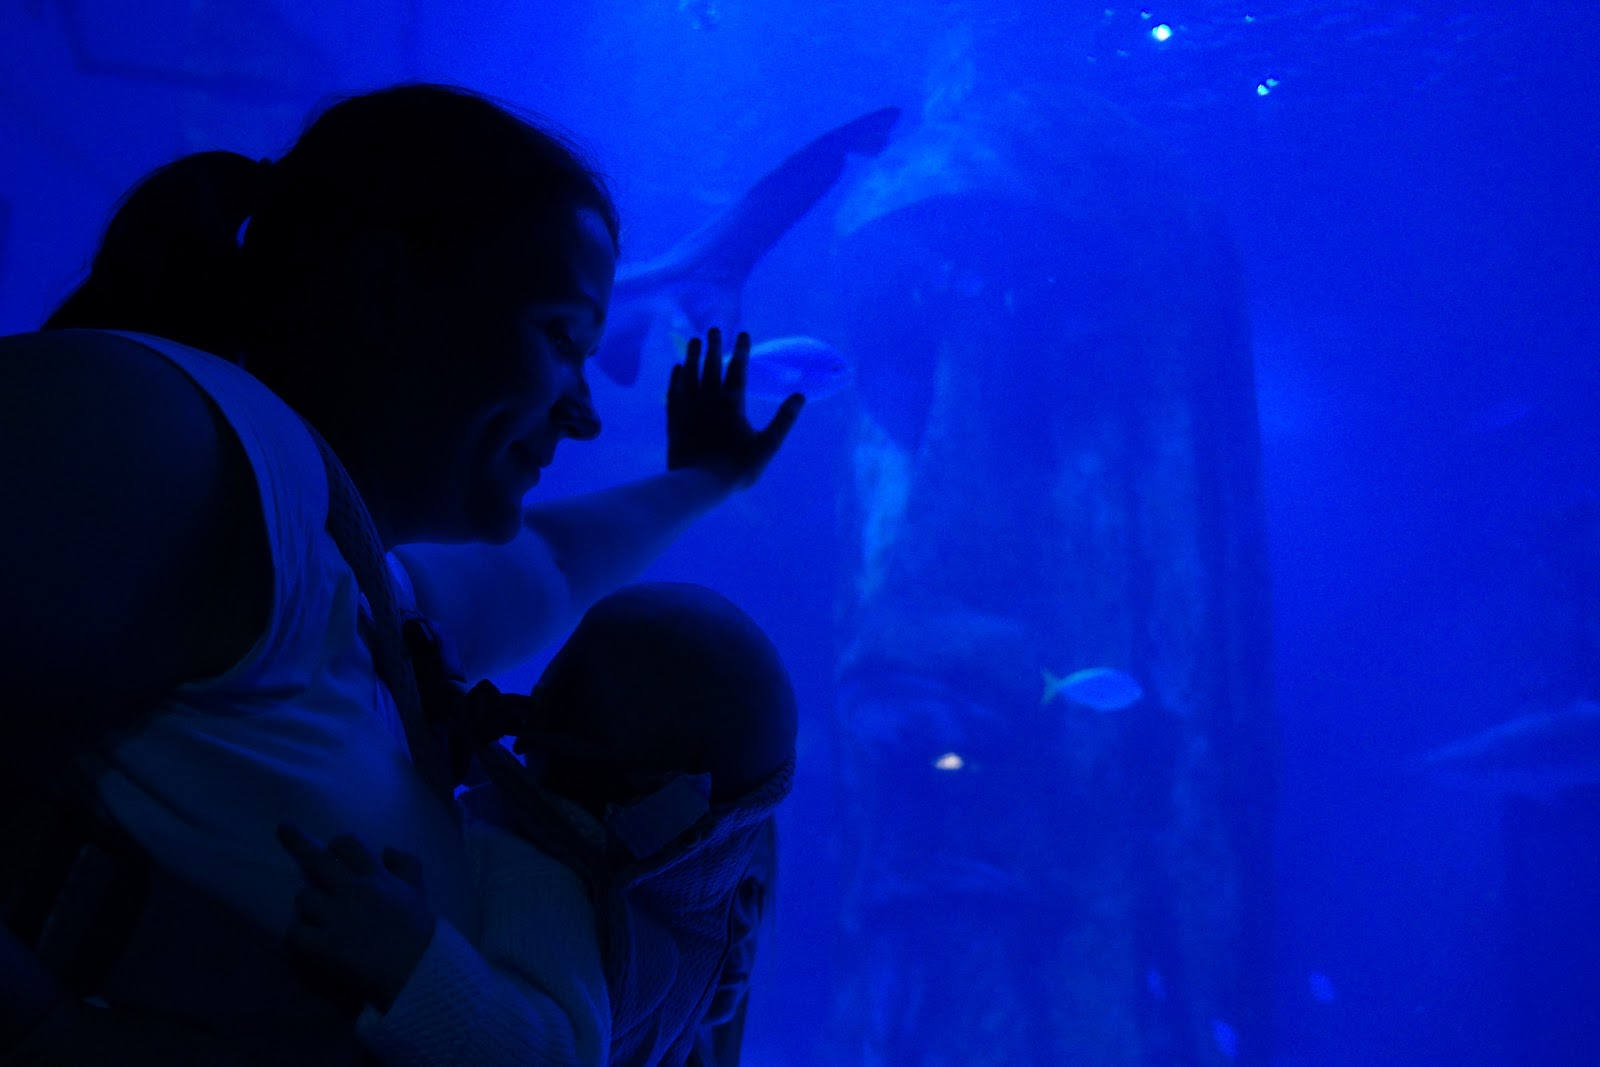 woman and baby in front of fish tank